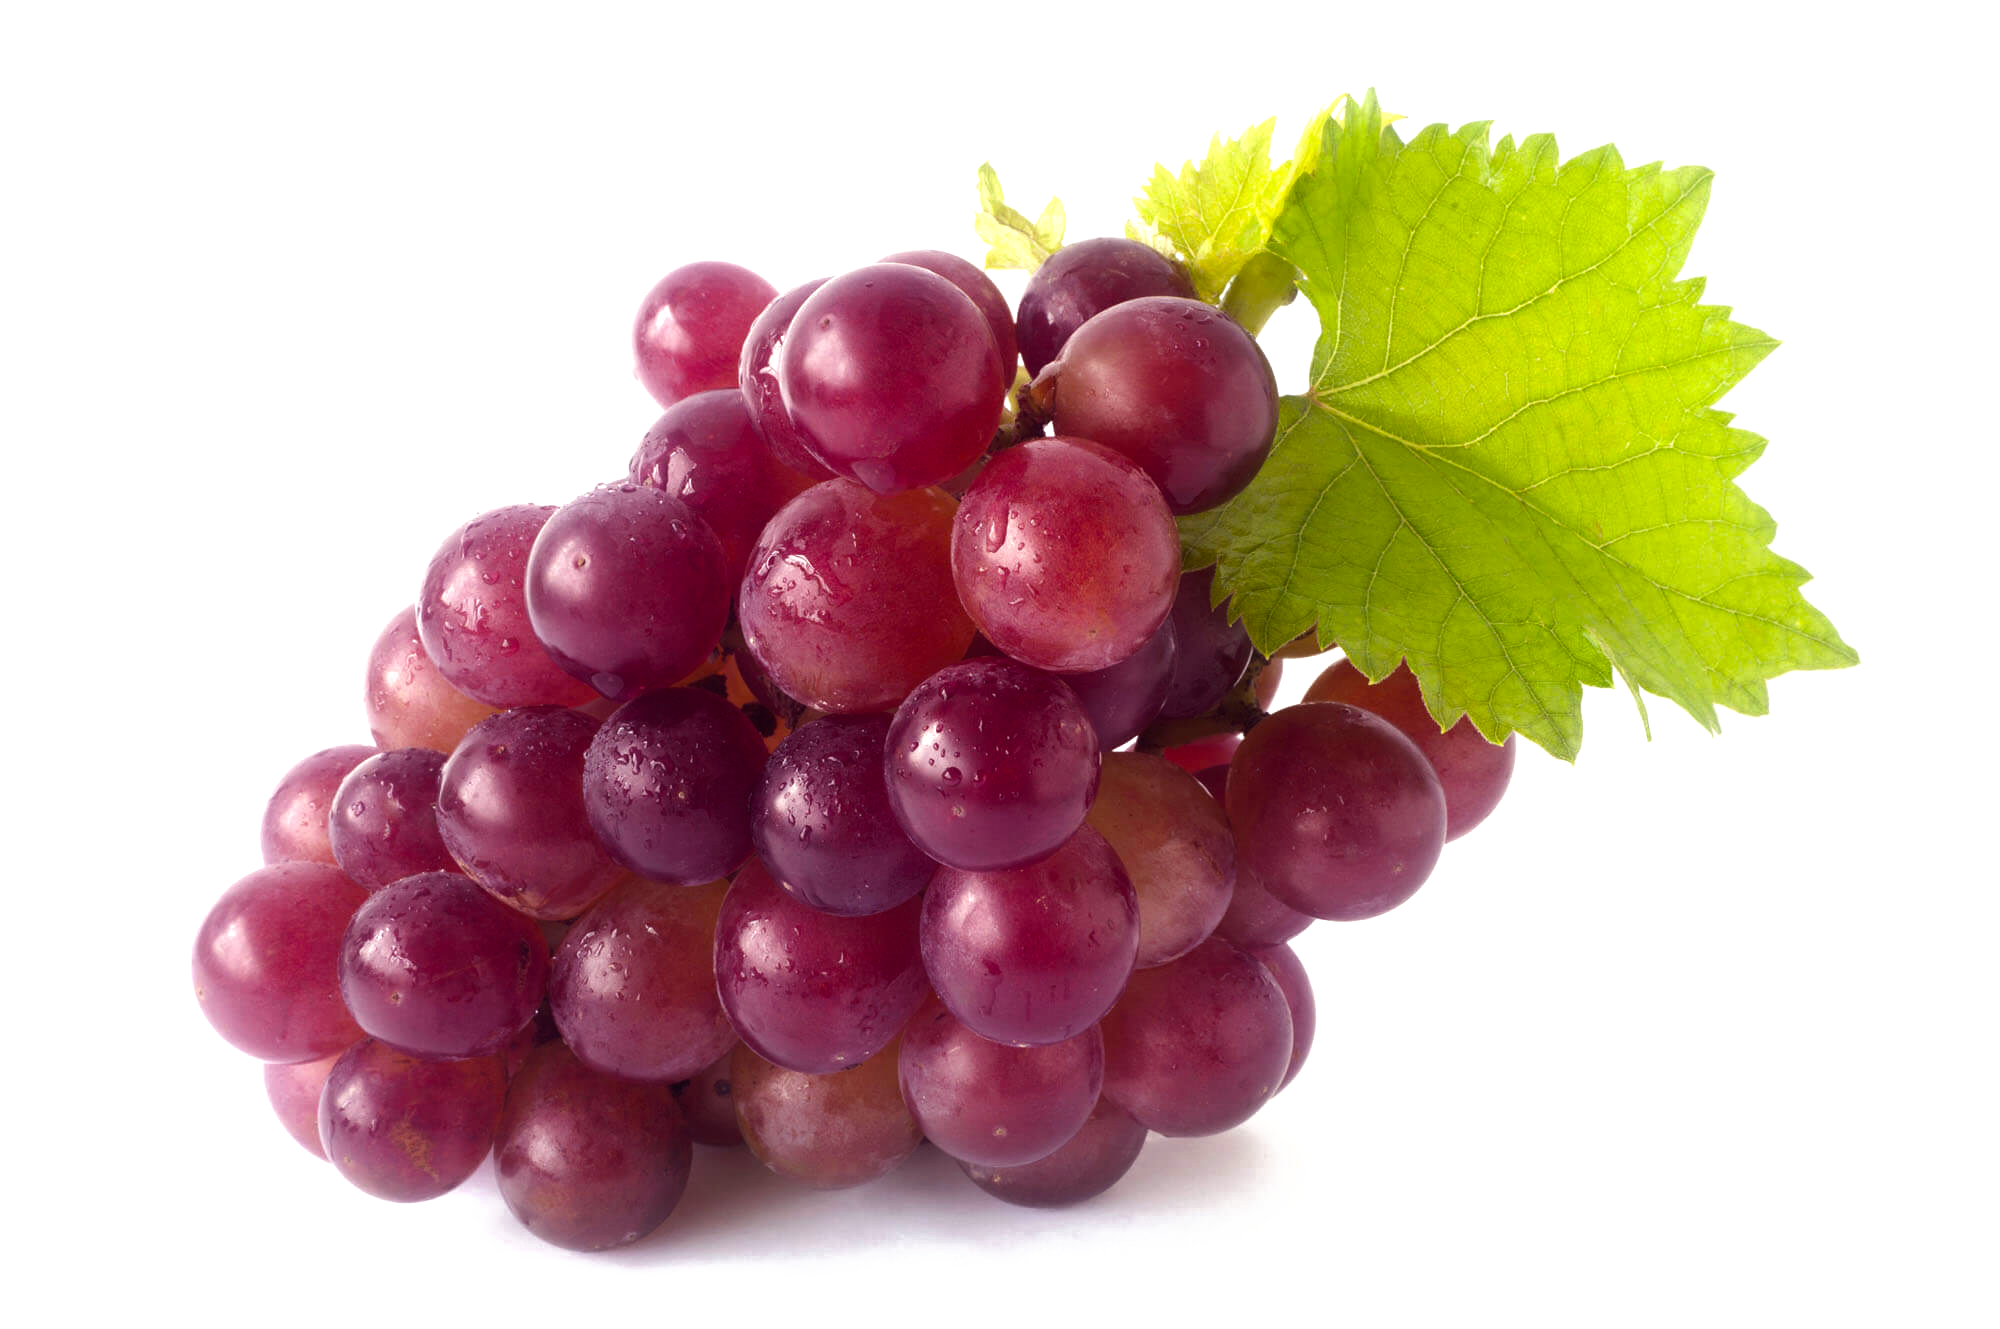 mzr red grapes #17051